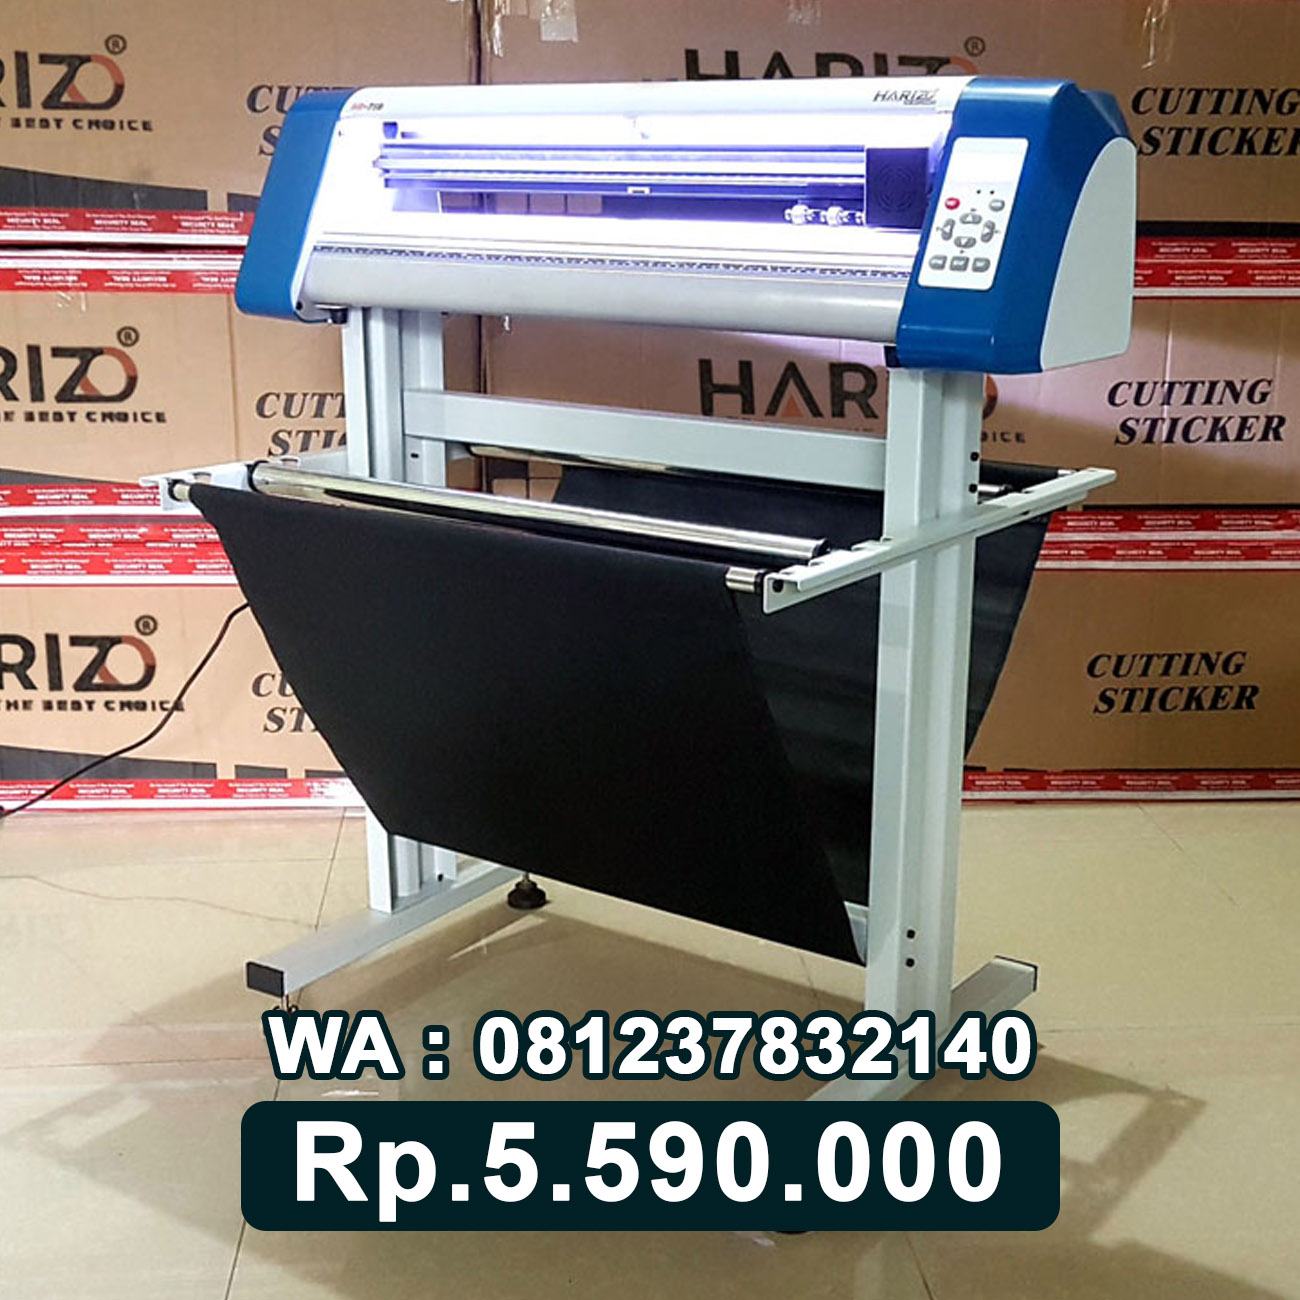 JUAL MESIN CUTTING STICKER HARIZO 720 Gianyar